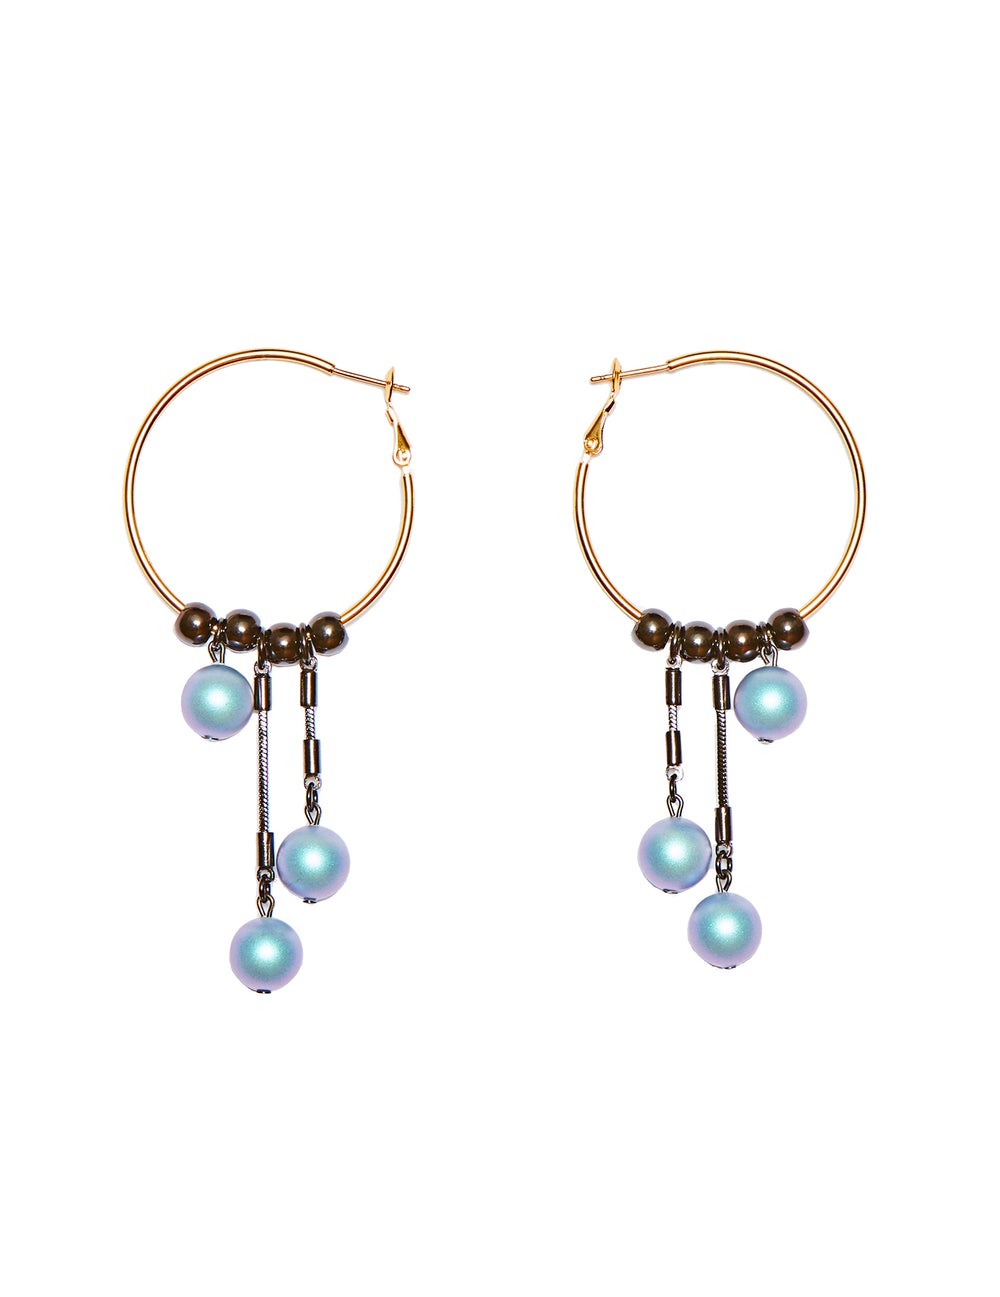 Hani hoop earrings